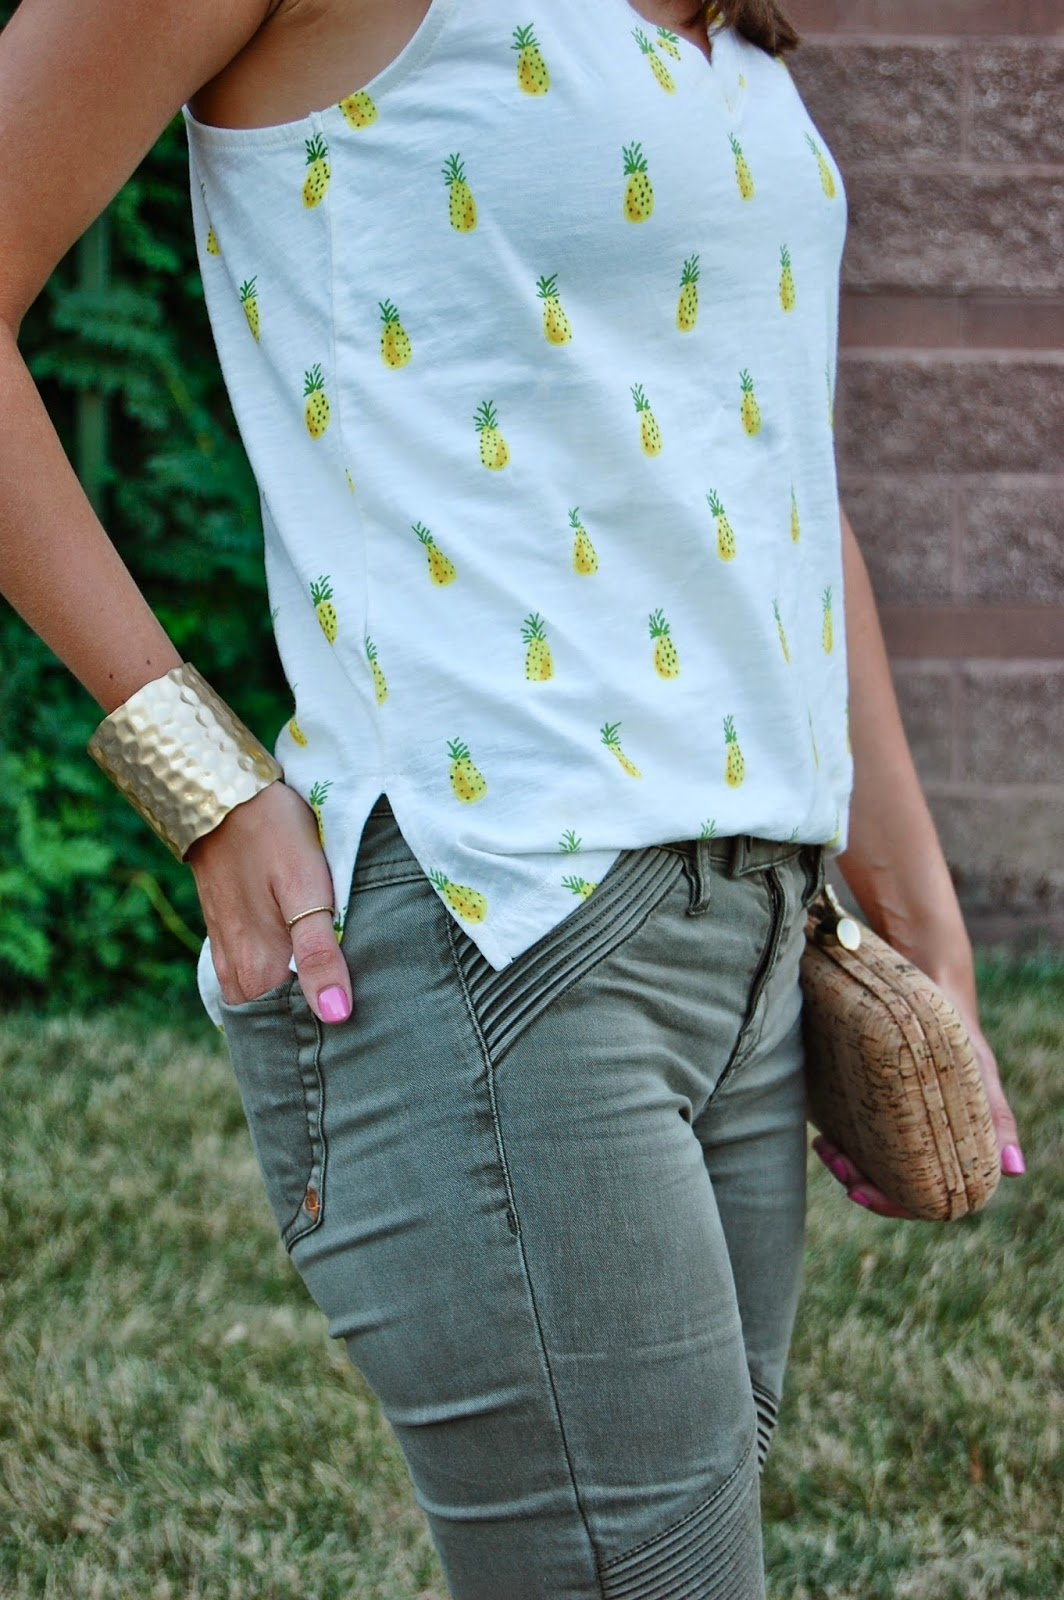 Wearing Merona Pineapple Tank Top, Dittos Brand Moto Skinny Jeans, Prima Donna Two Tone Ankle Strap Heels, Jeans and Heels look